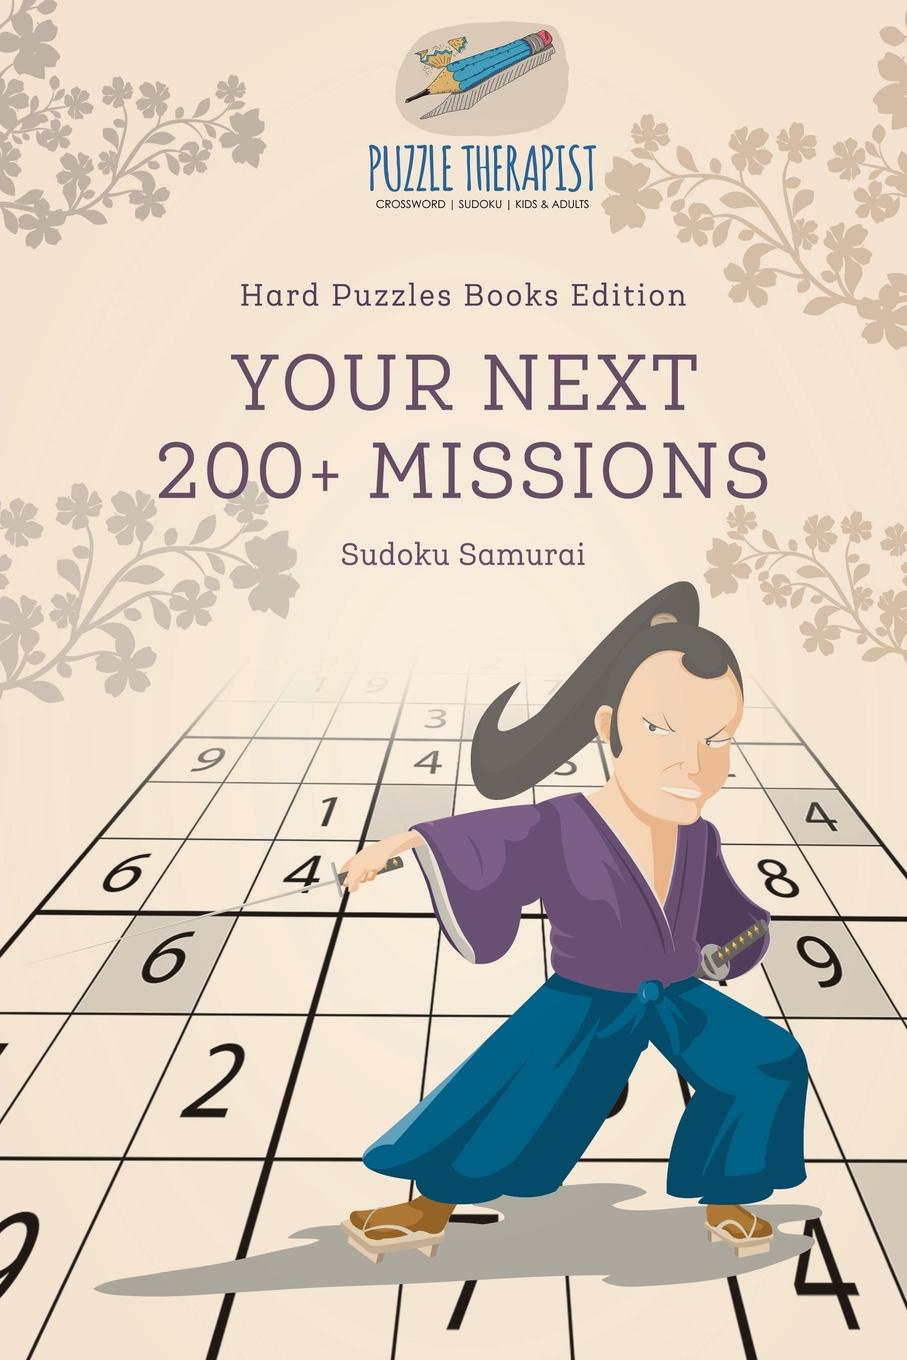 Puzzle Therapist Your Next 200+ Missions . Sudoku Samurai . Hard Puzzles Books Edition heidi rice so now you re back